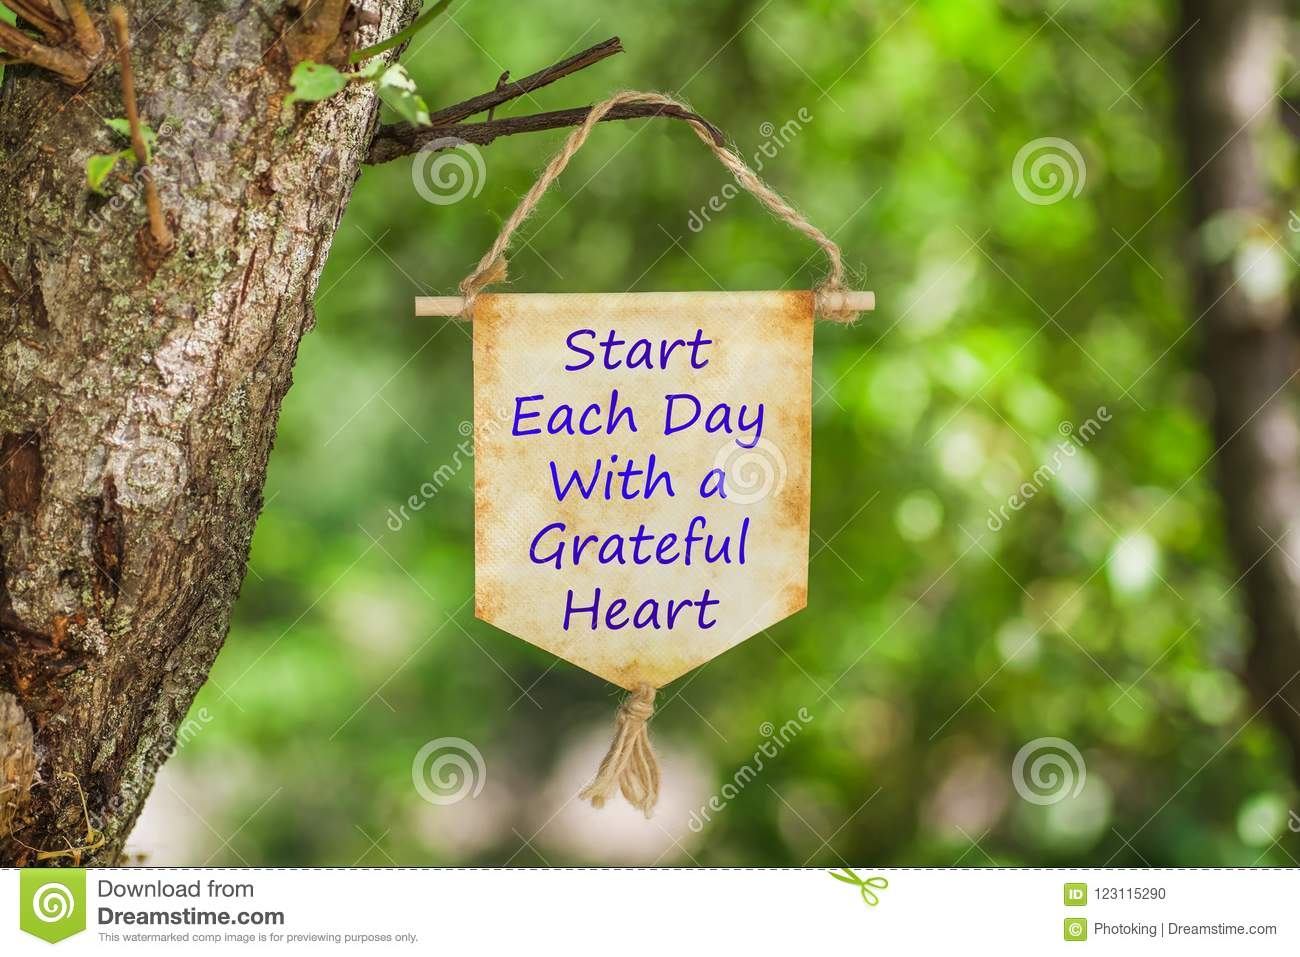 Start each day with a grateful heart on Paper Scroll